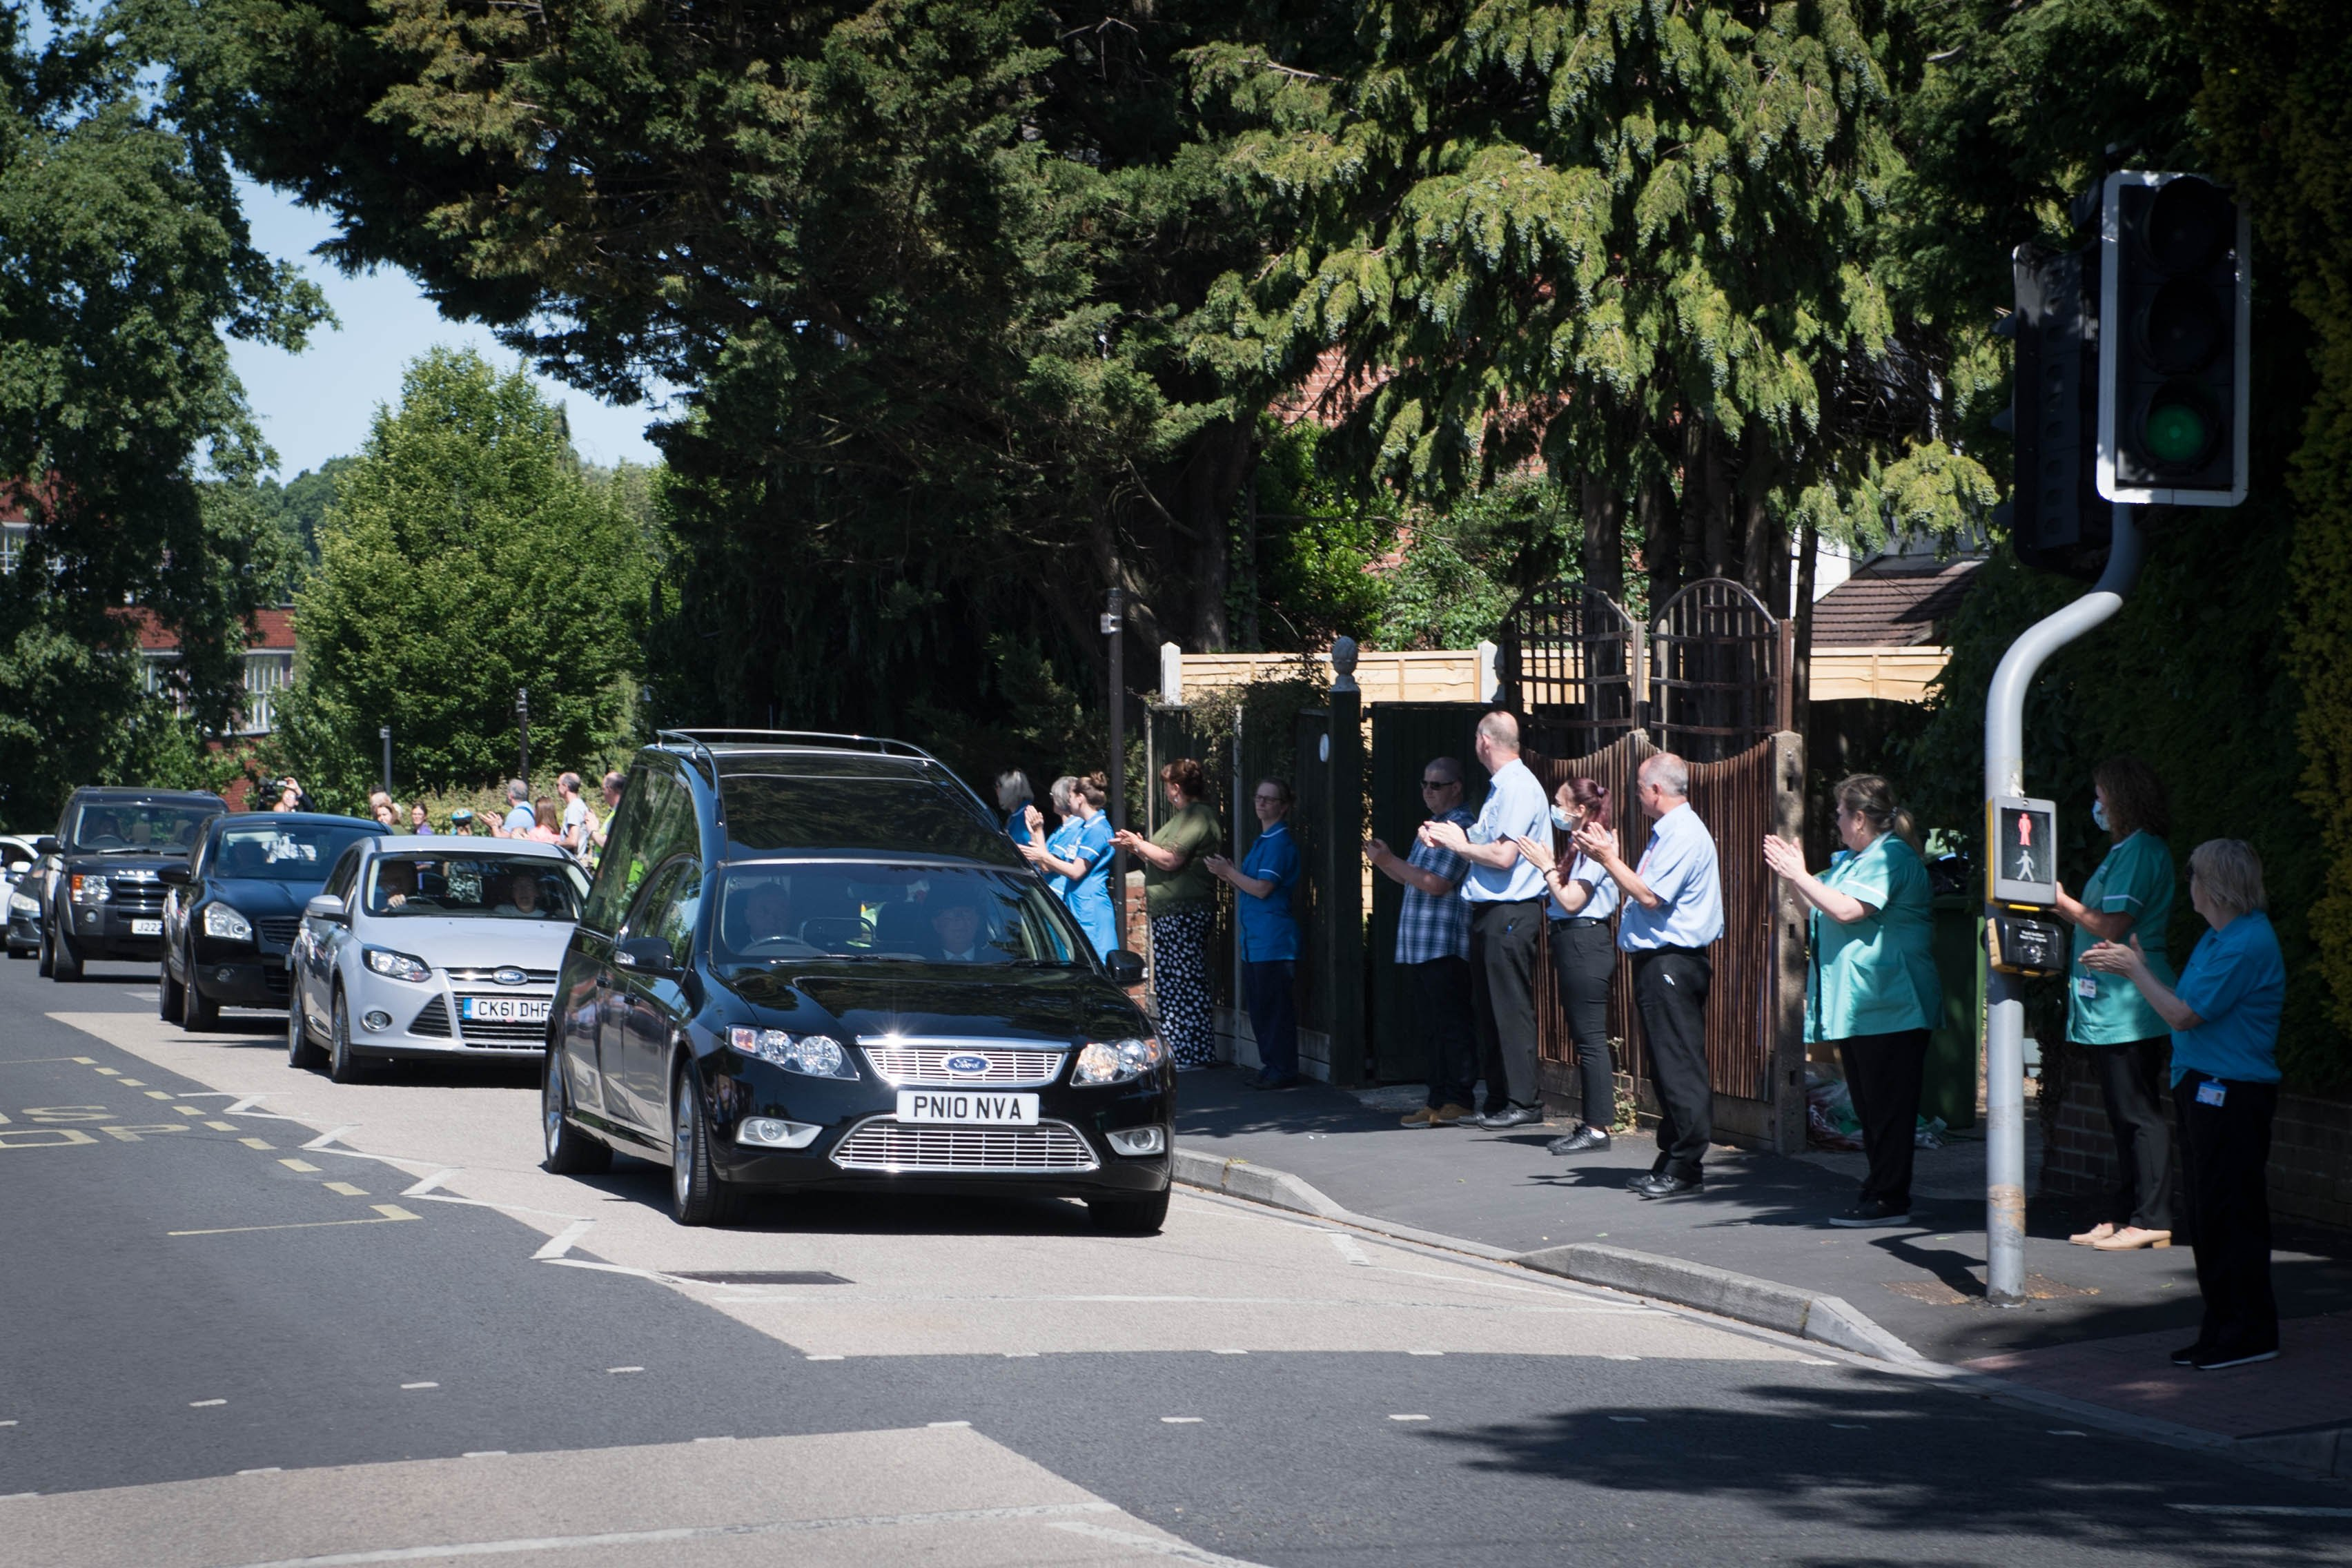 Colleagues line street for funeral procession of 'loved and valued' NHS worker